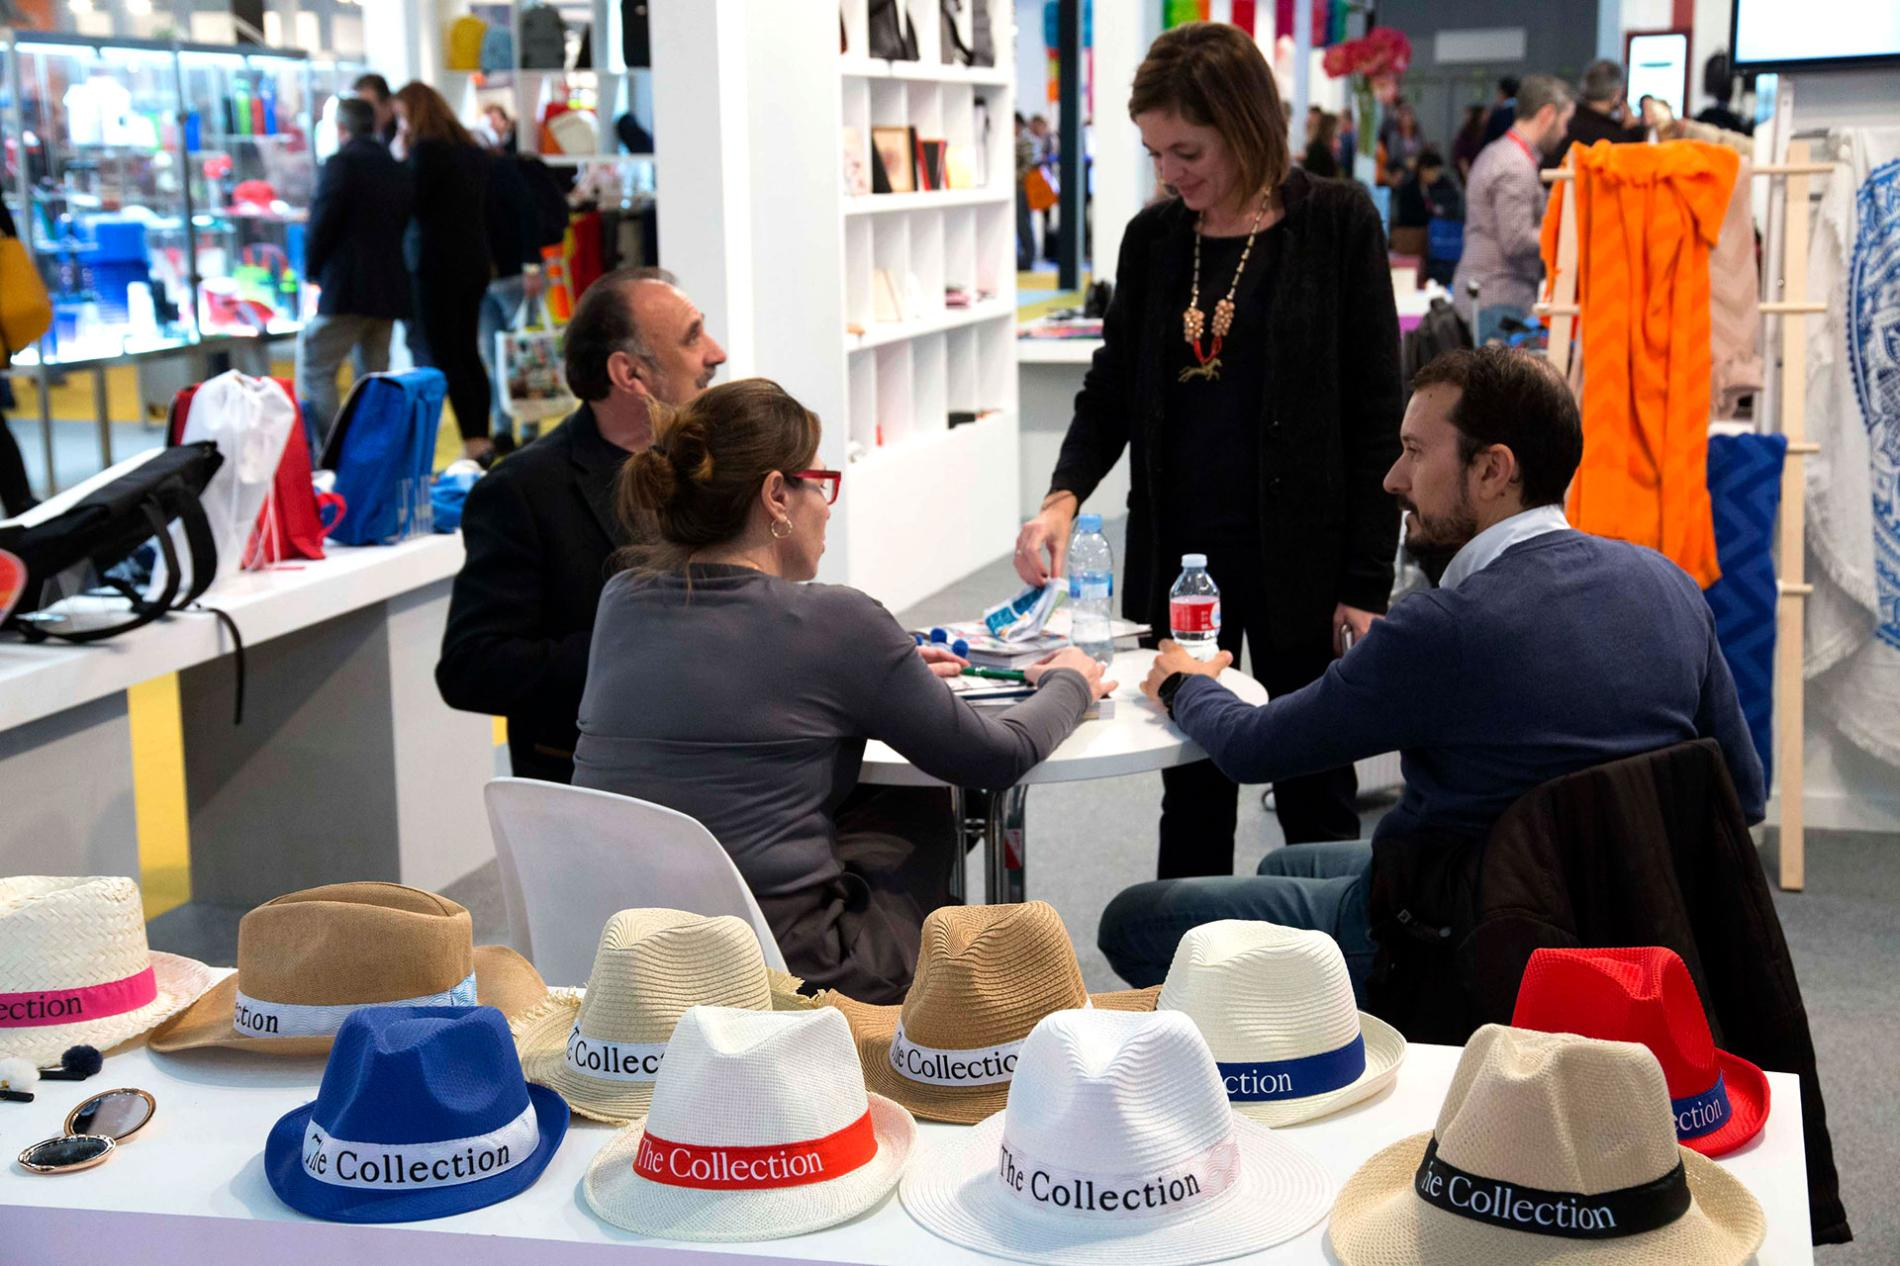 Stand showing samples of hats